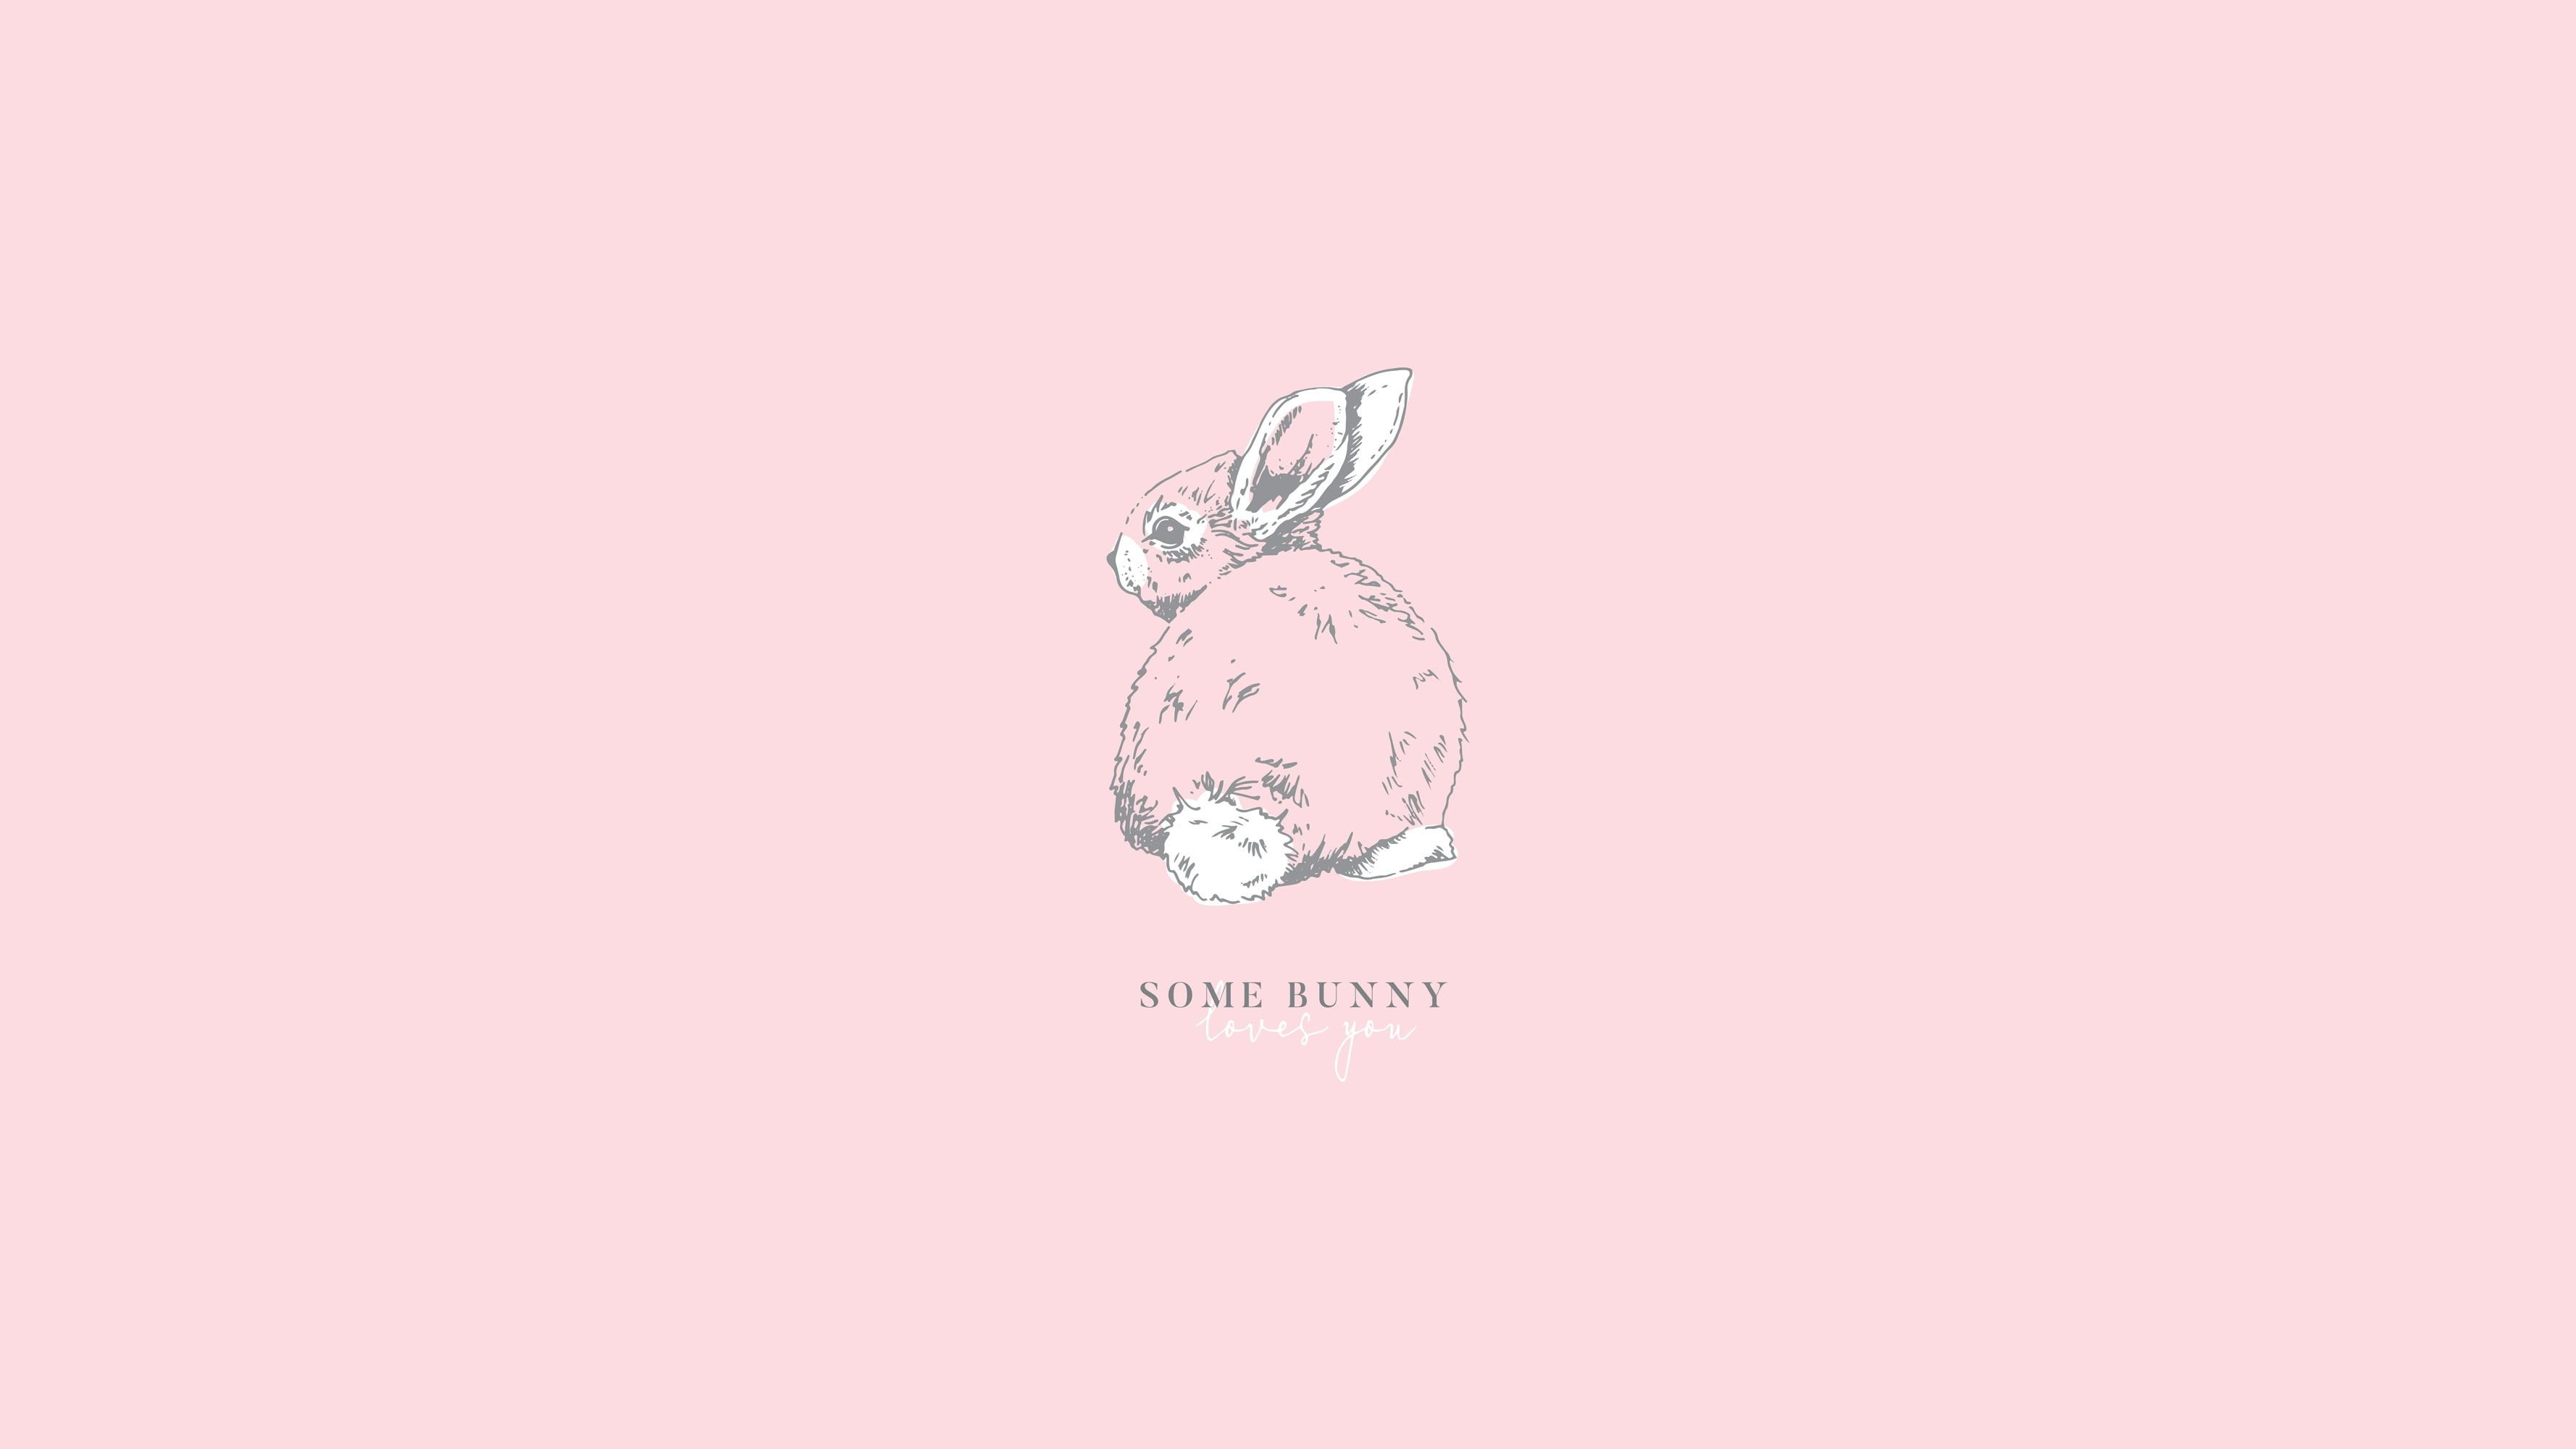 Pastel Tumblr Aesthetic Desktop Wallpapers Top Free Pastel